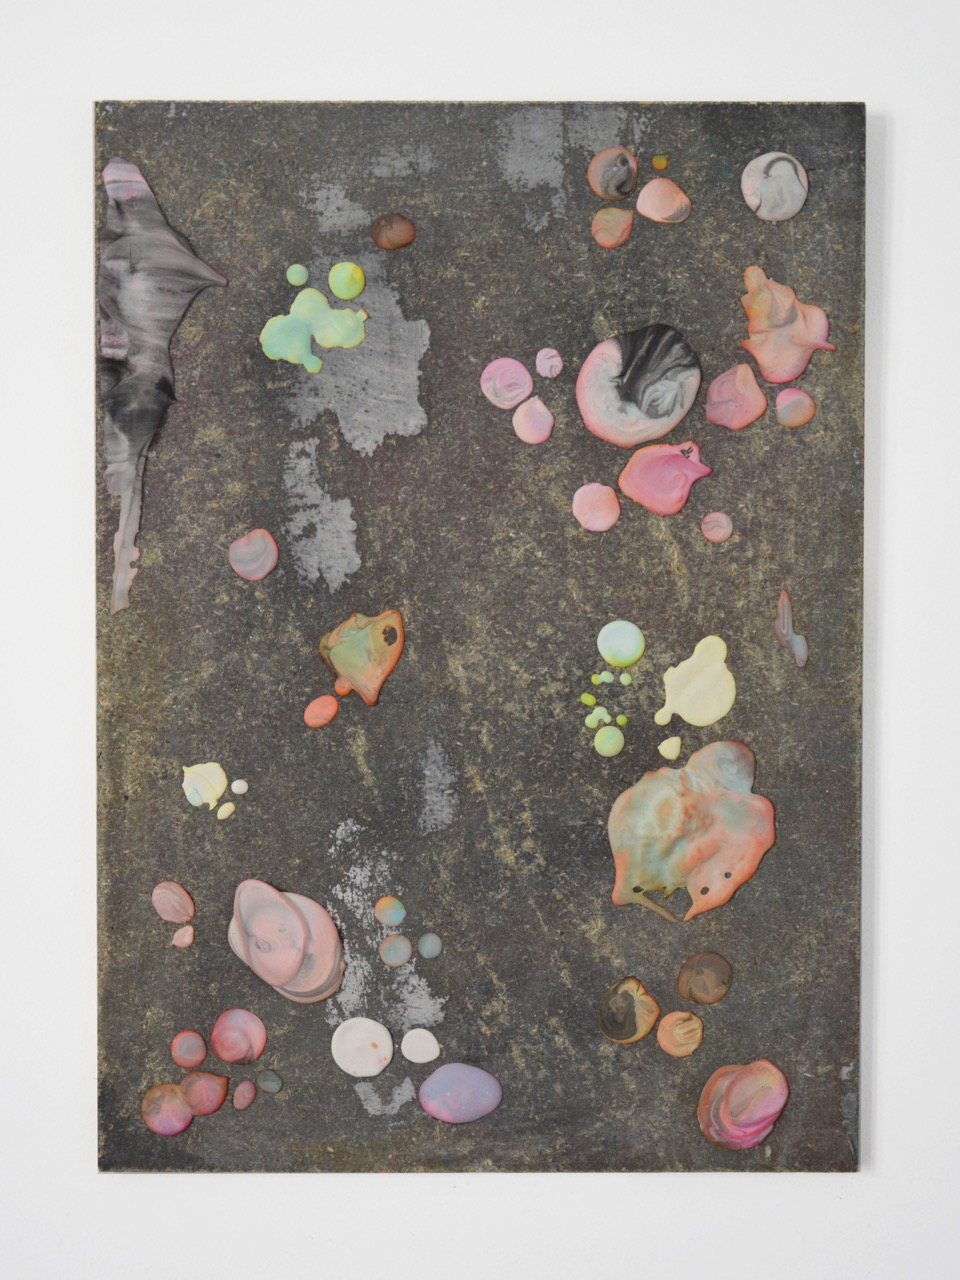 FABRICE CAZENAVE Sliders (21), 2015, Dried drips of coloured plaster, glue, wood, 42 x 30cm